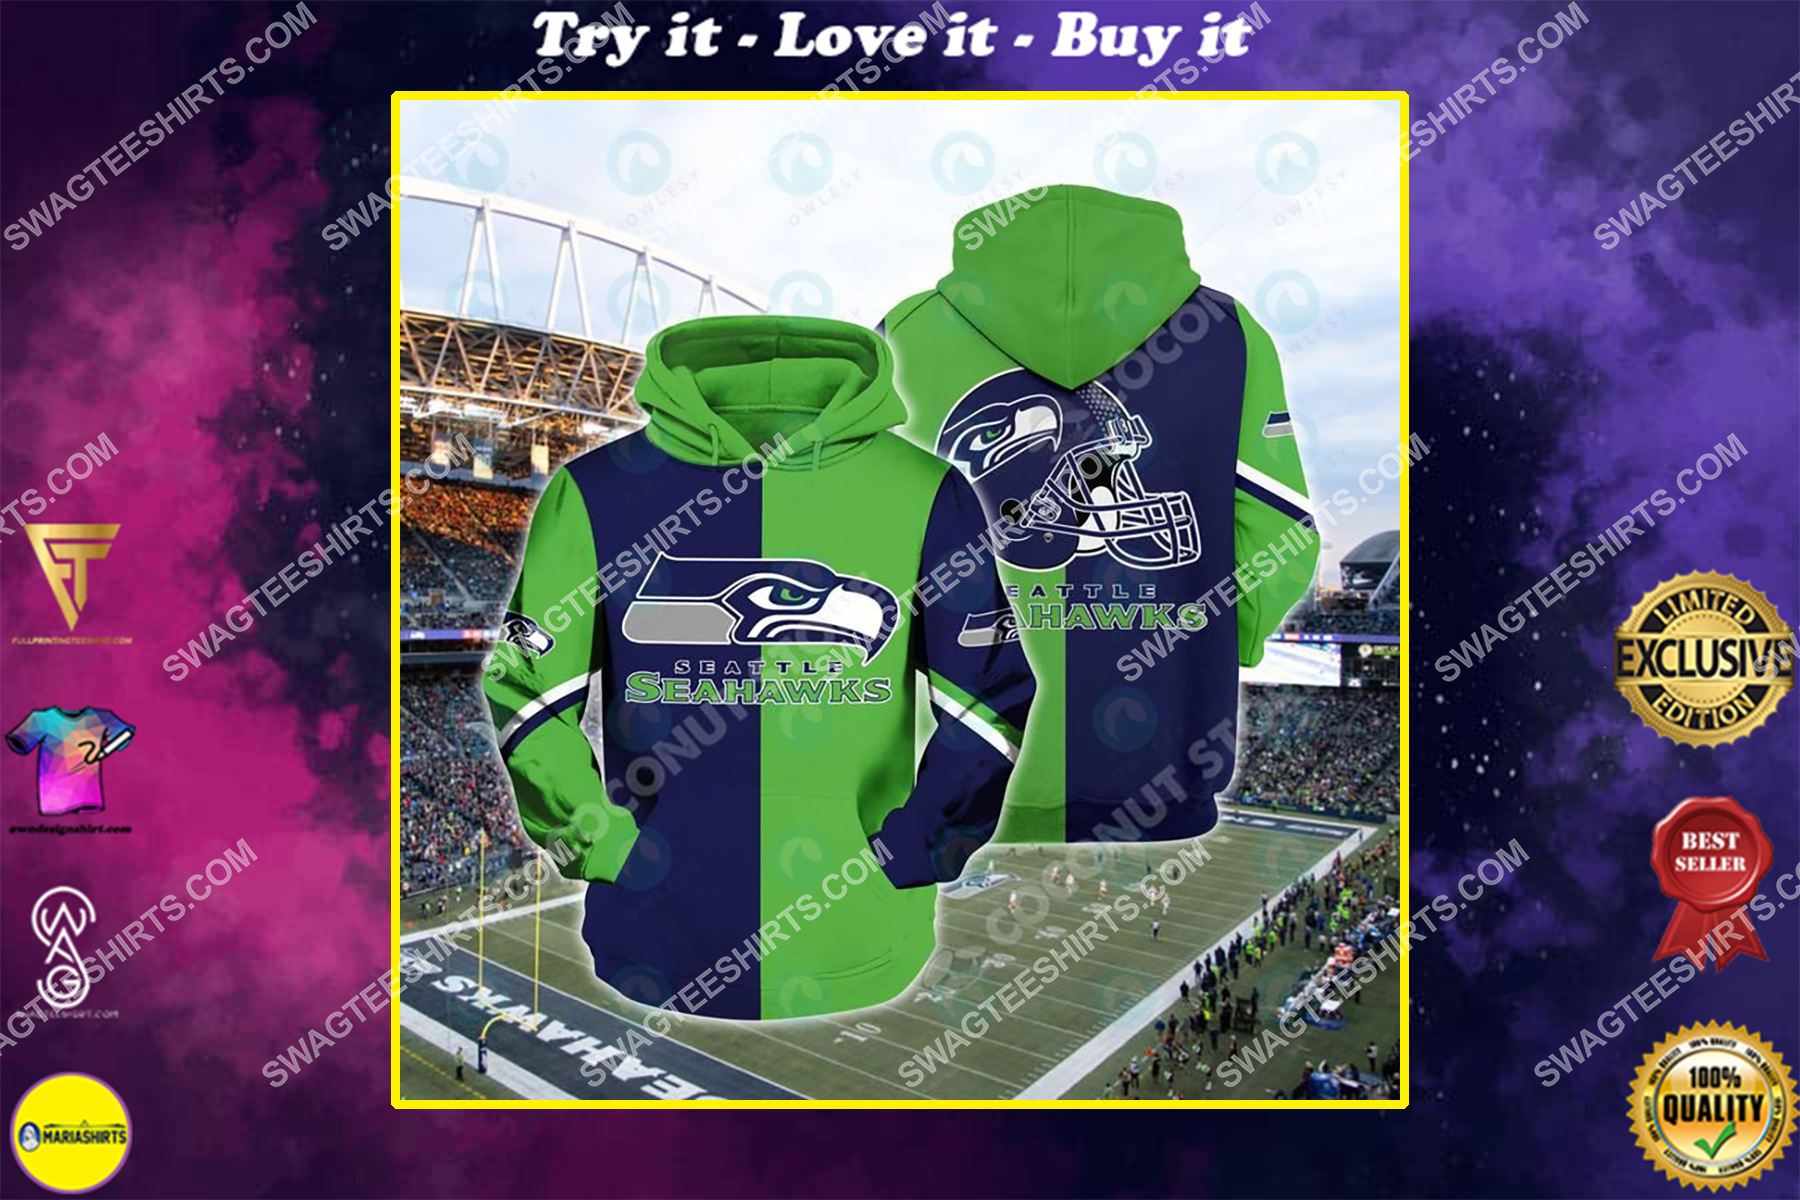 the football team seattle seahawks all over printed shirt